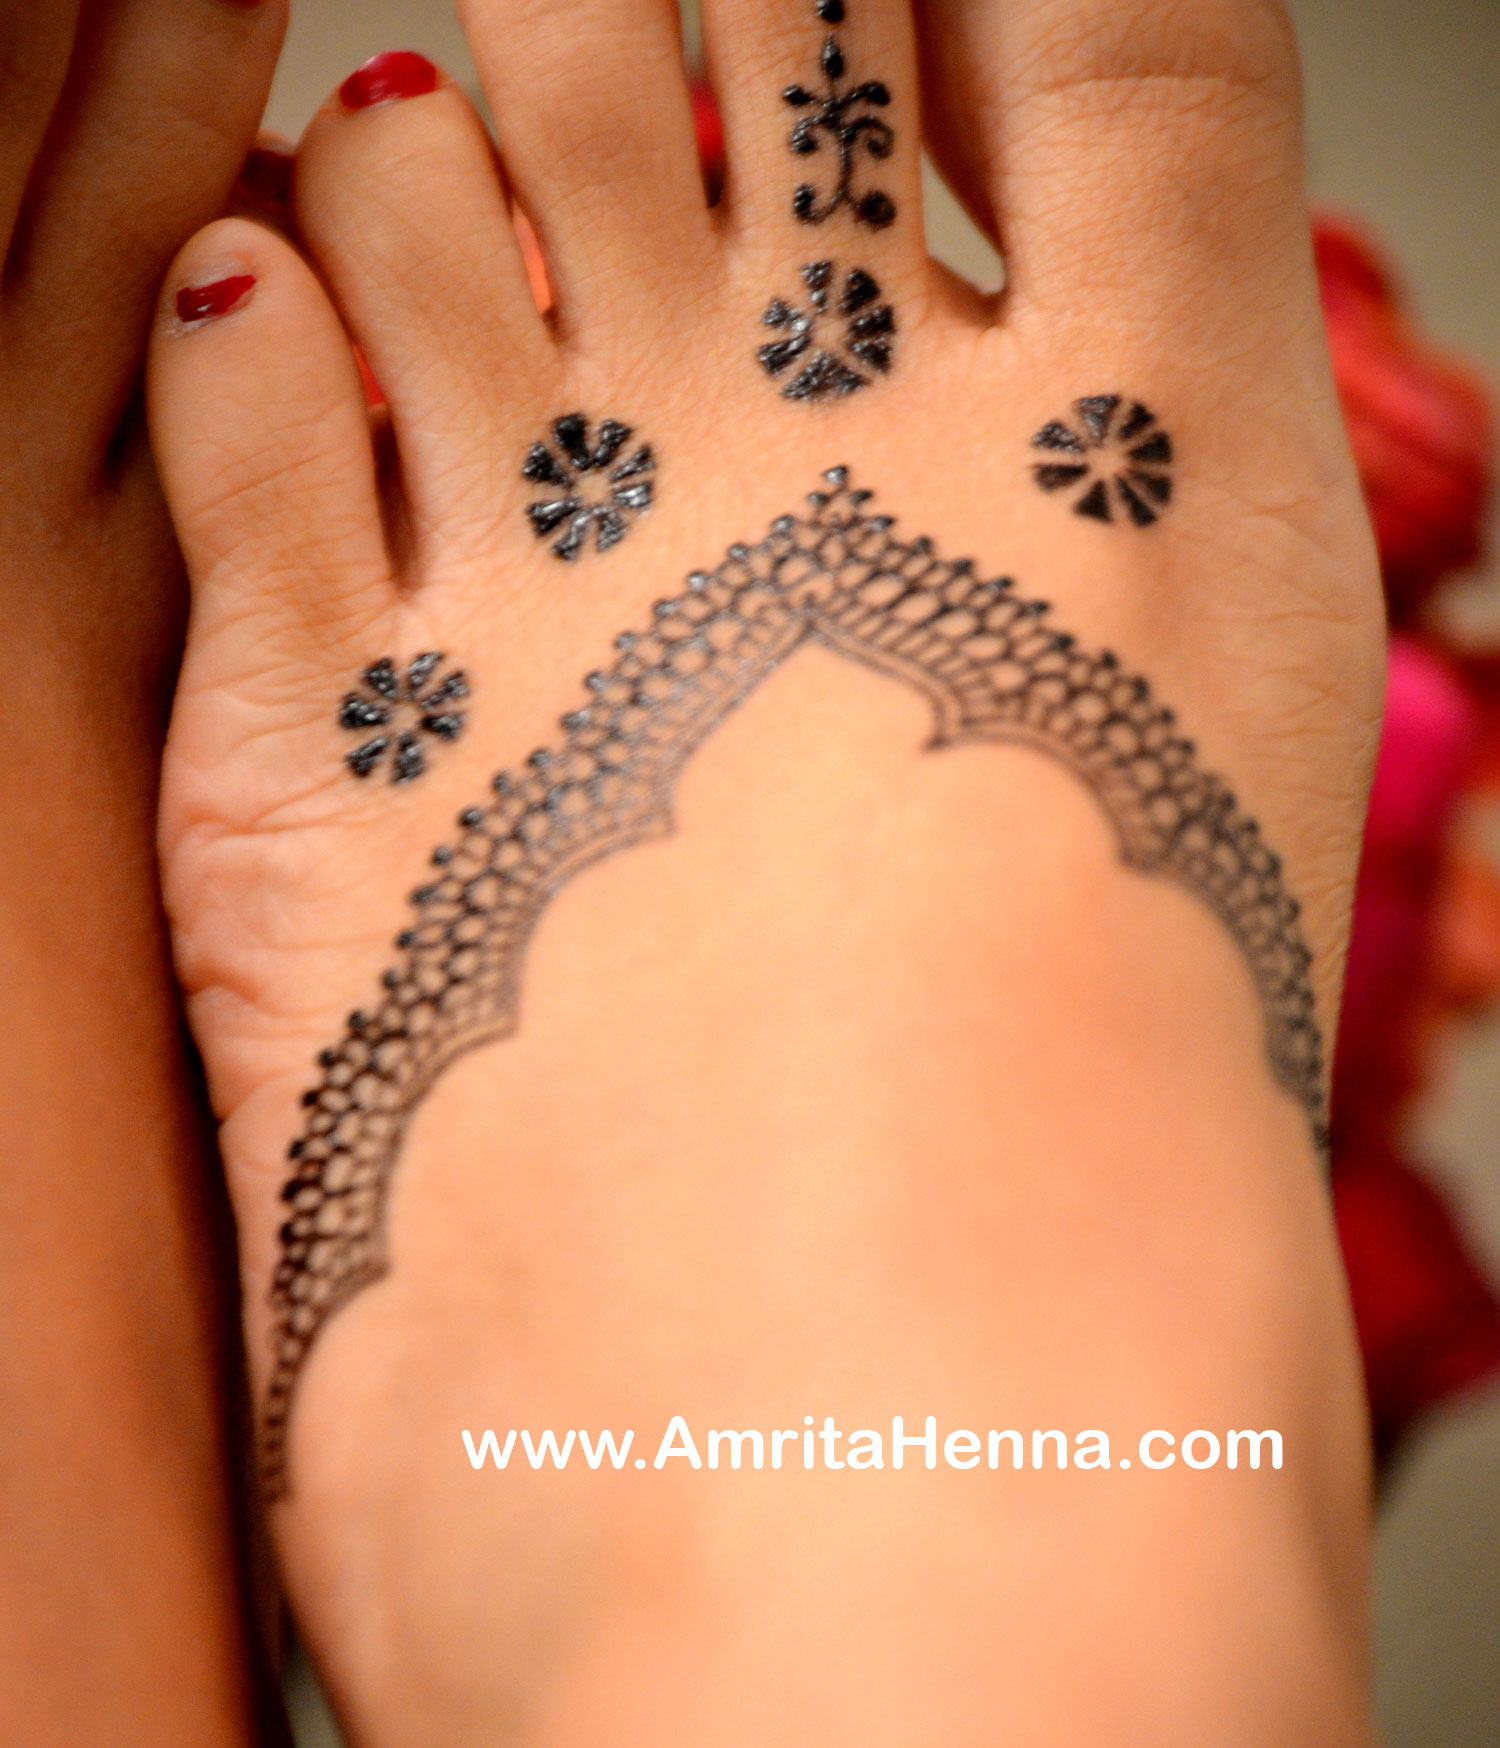 Best Jagua Design for Feet - Most Popular Feet Jagua Design - Best Jagua Art Designs - Jagua Art Work - Jagua Tattoo Art - Must Try Jagua Feet Design - Latest Famous Jagua Feet Design - Easy to Do Jagua Feet Design by Professional Artist Amrita Kale - Best Ideas for Jagua Feet Design